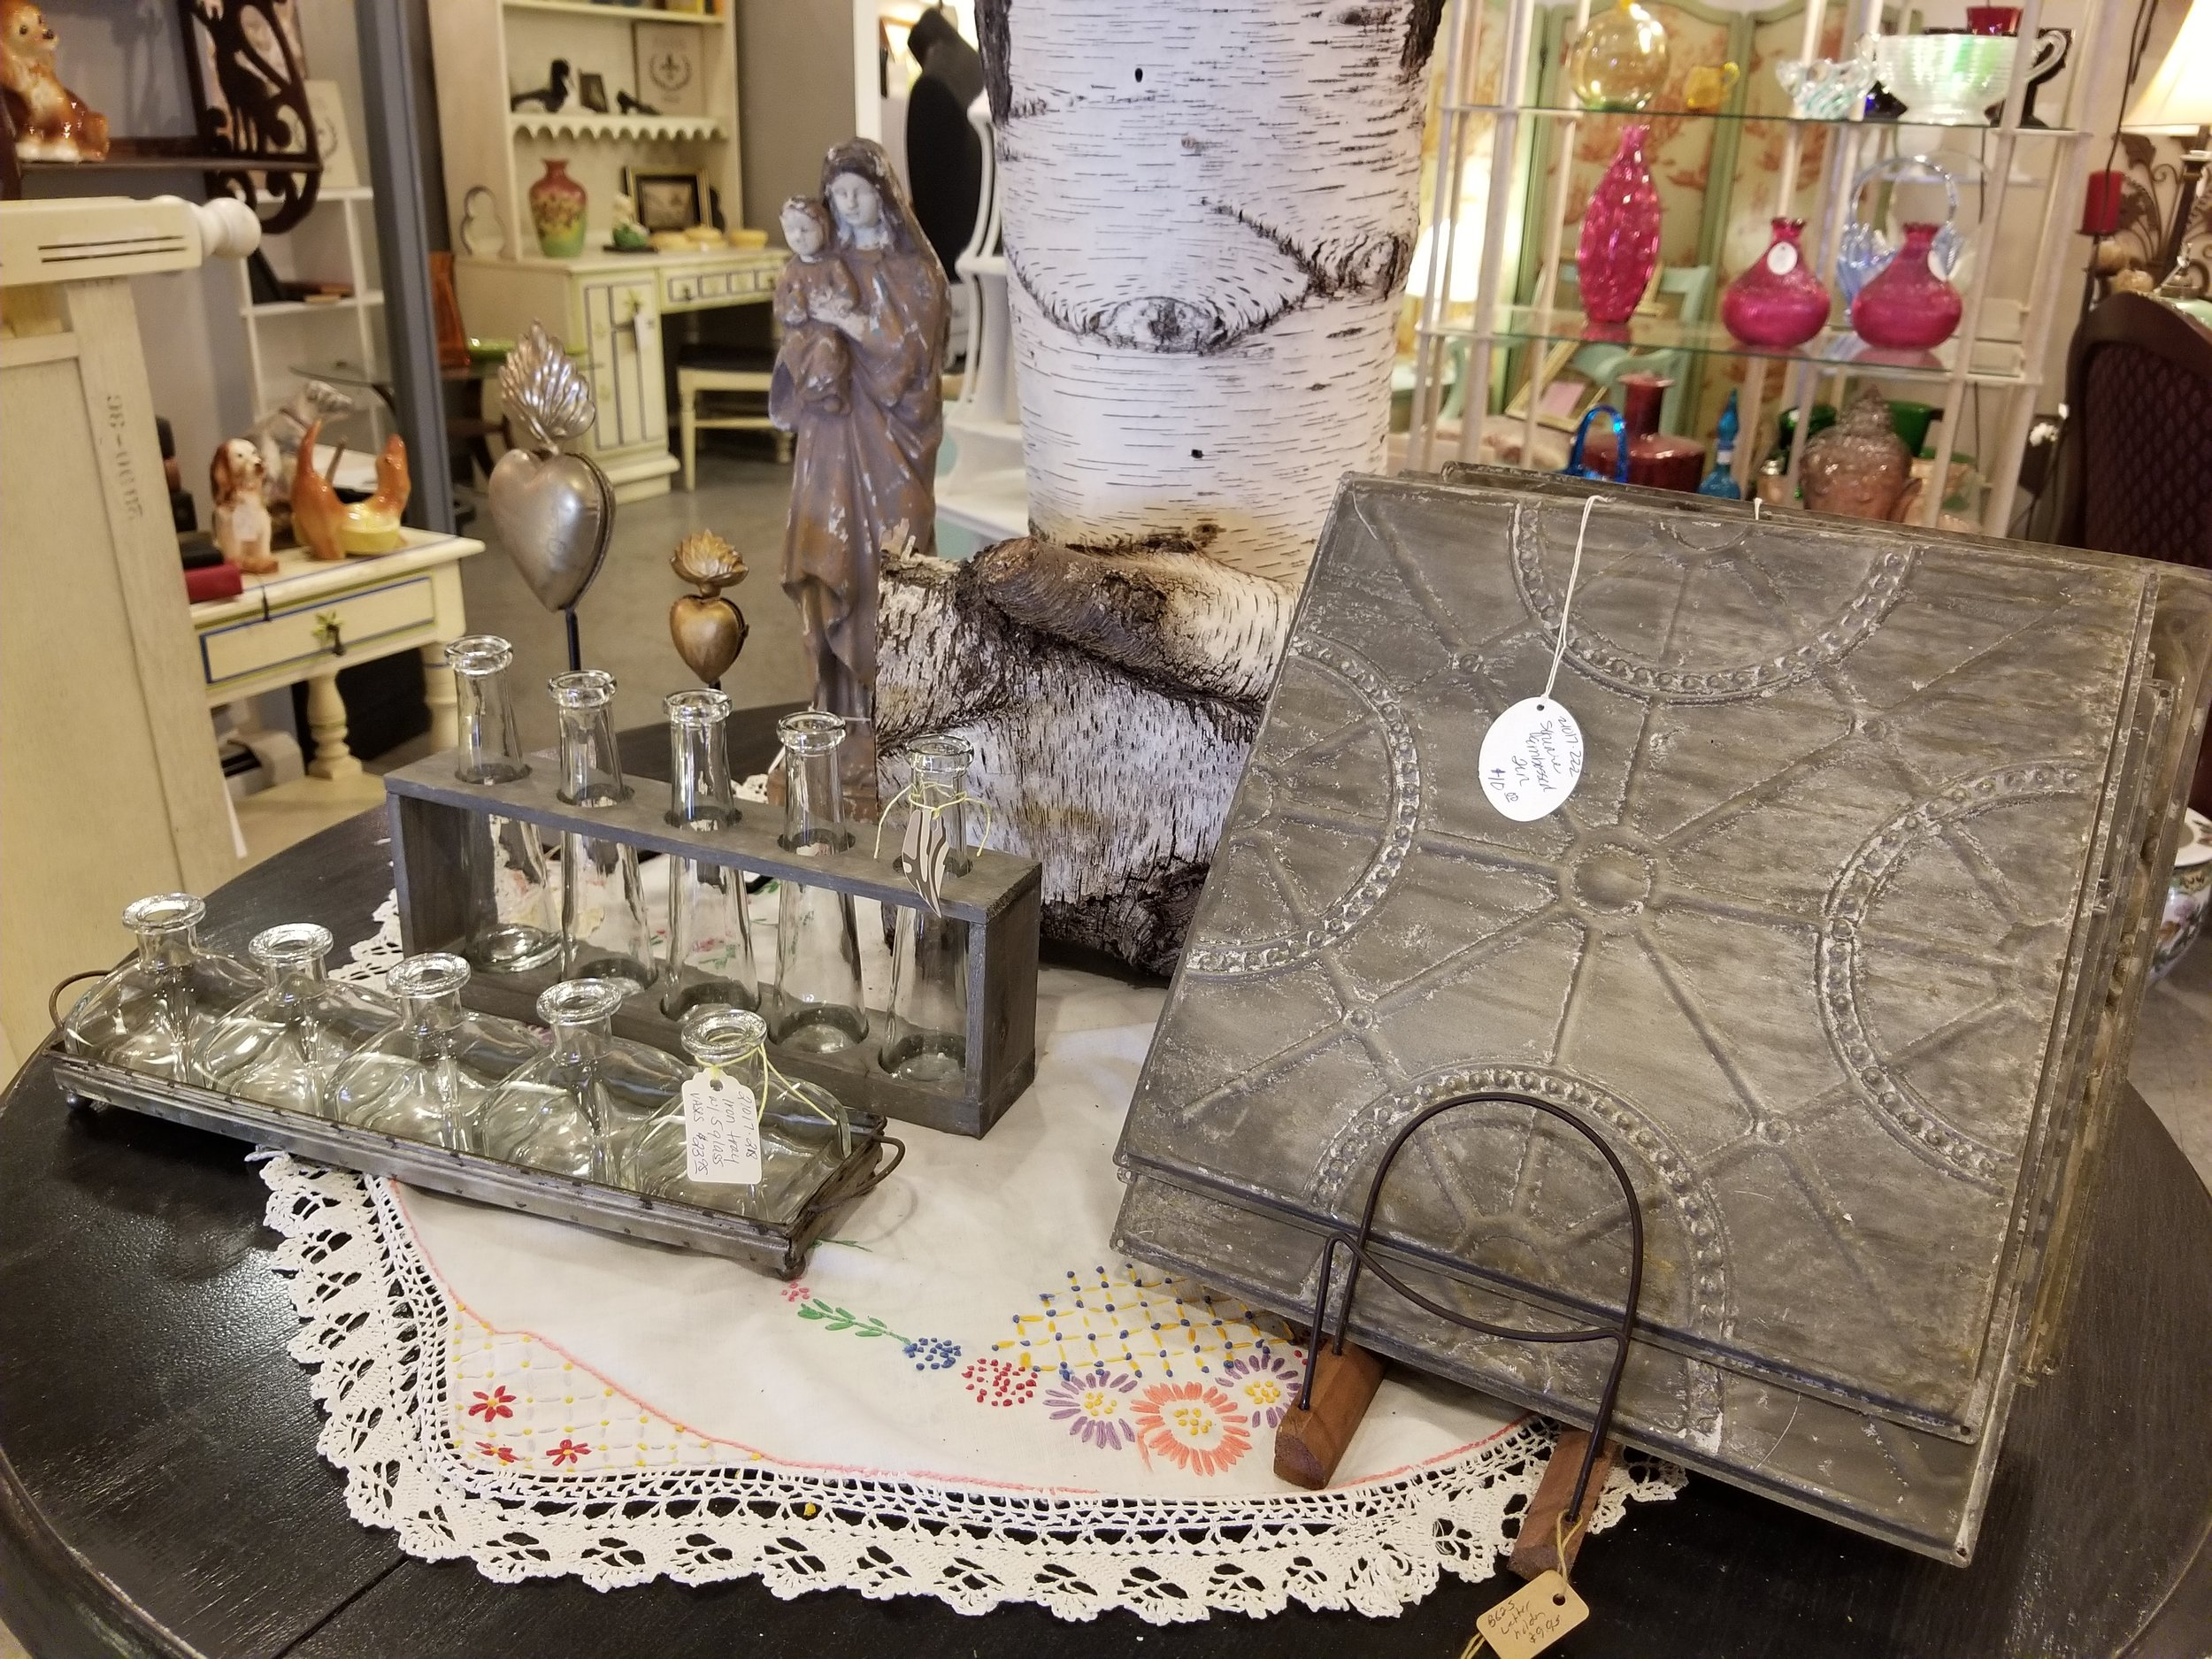 Off the Avenue Antiques - 1000 4th Ave, (412) 299-0877